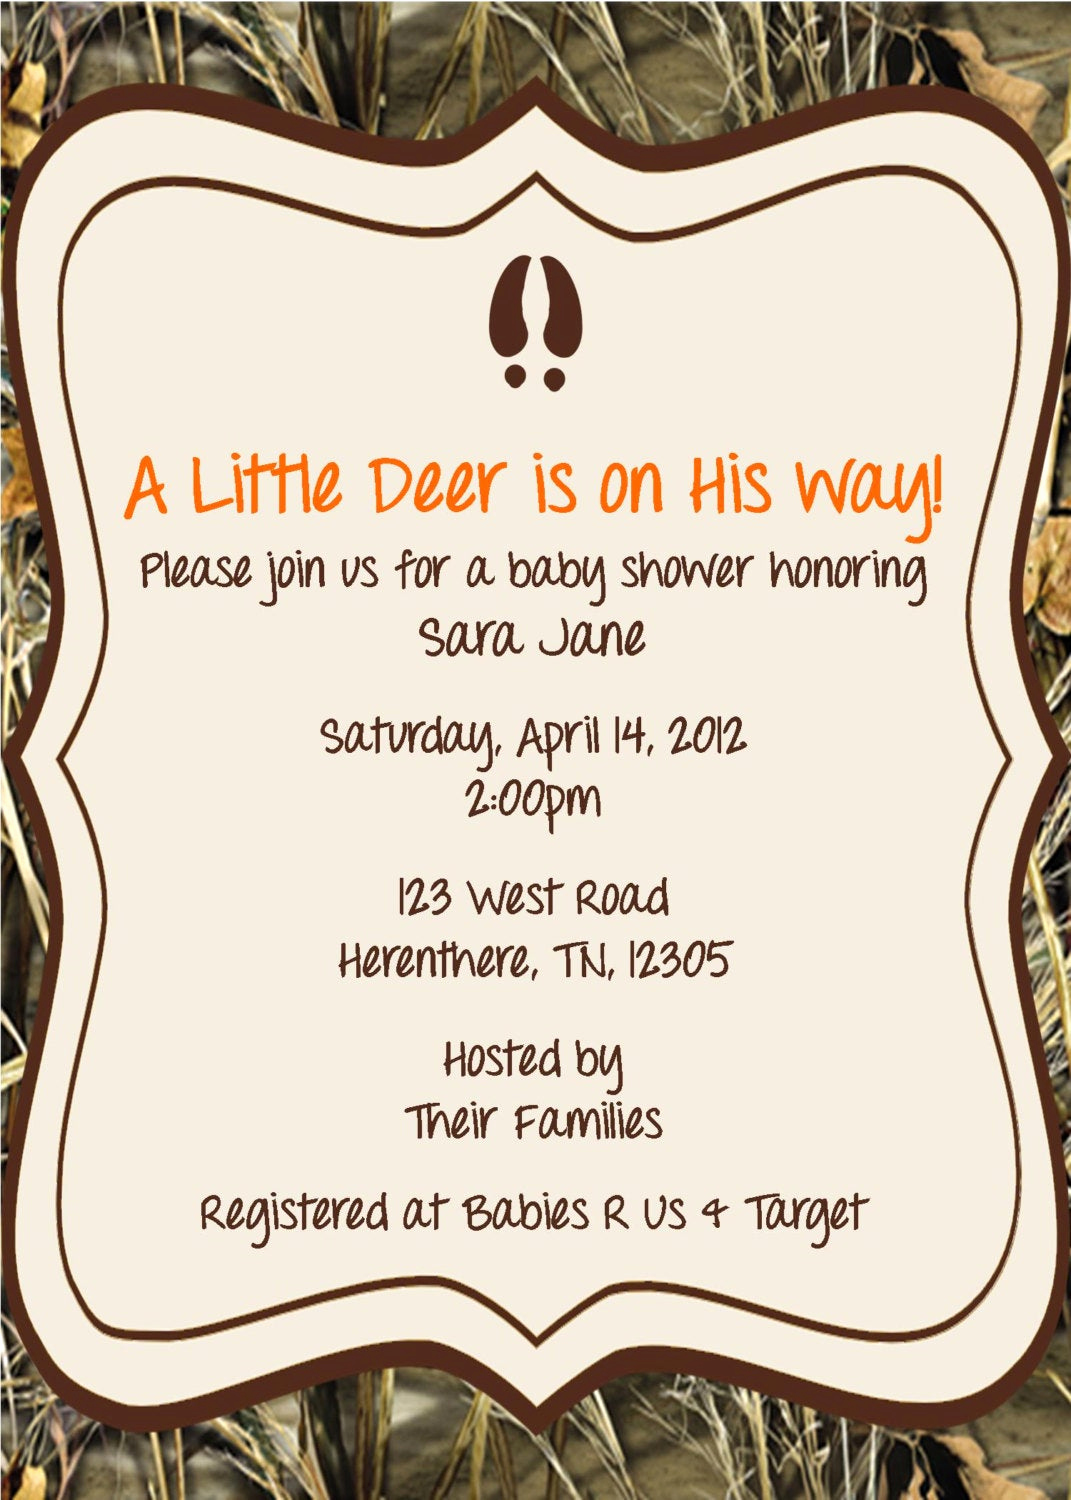 Cute Baby Shower Invitation Wording Elegant Little Hunter Baby Shower Invitation by Whateveris On Etsy